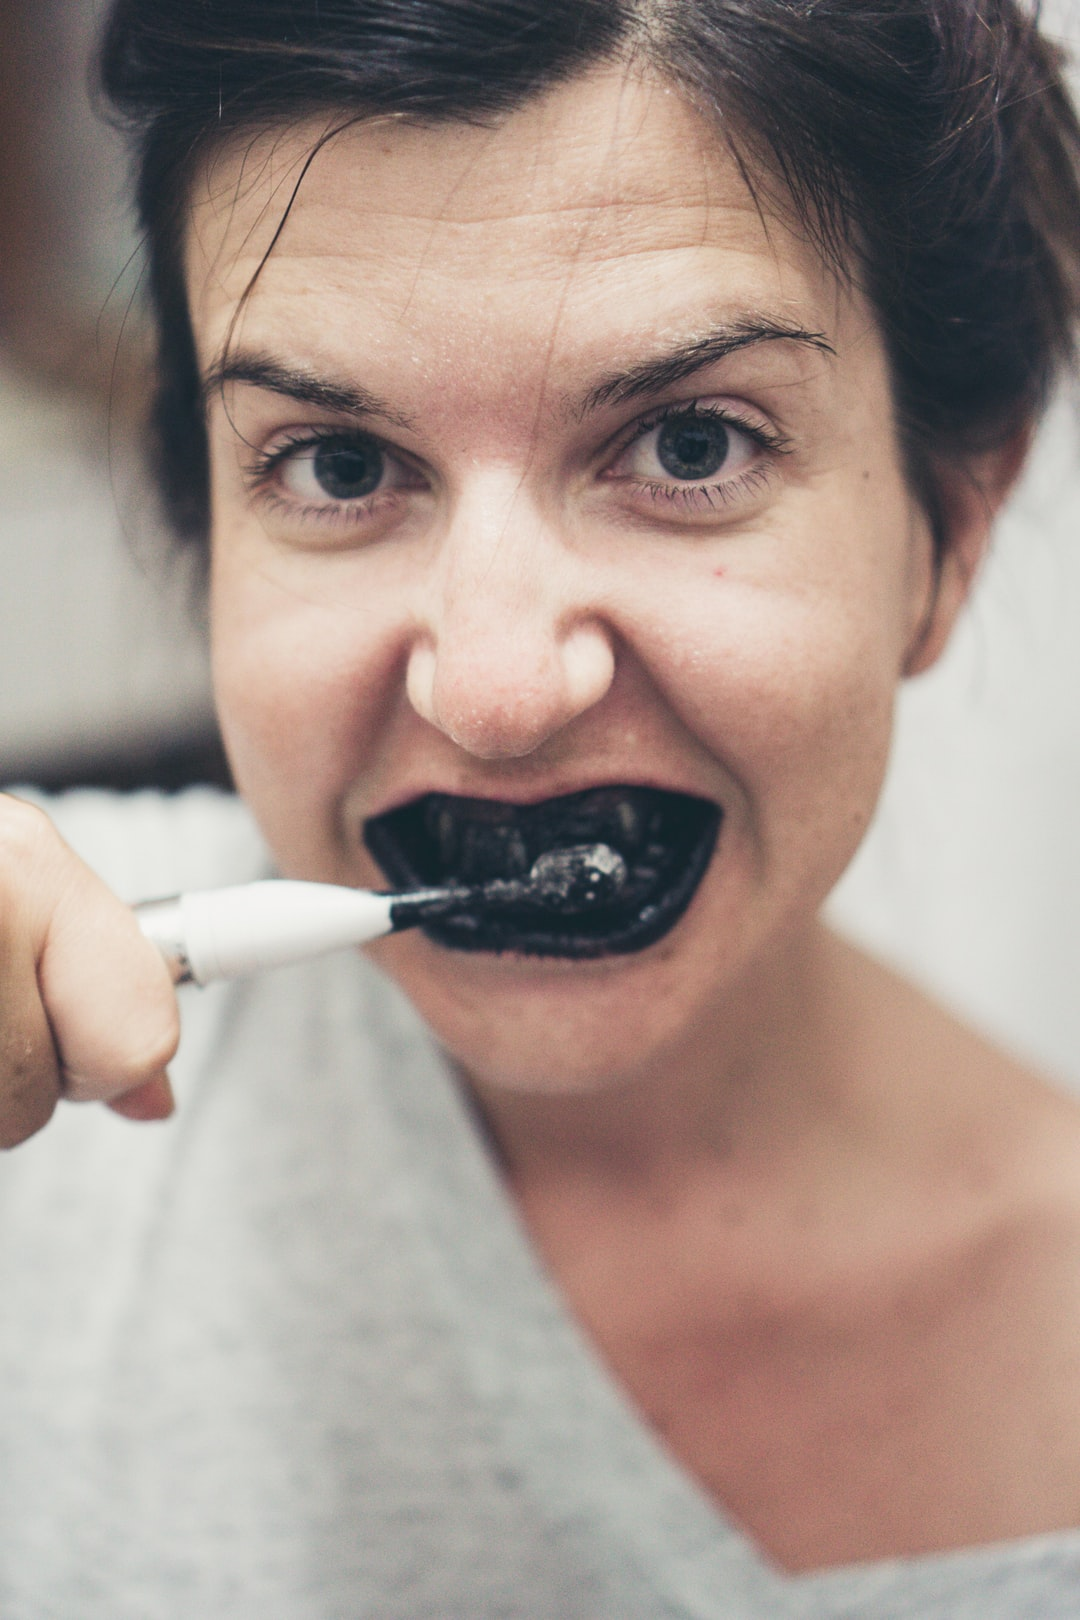 Black toothpaste? Oh yeah!